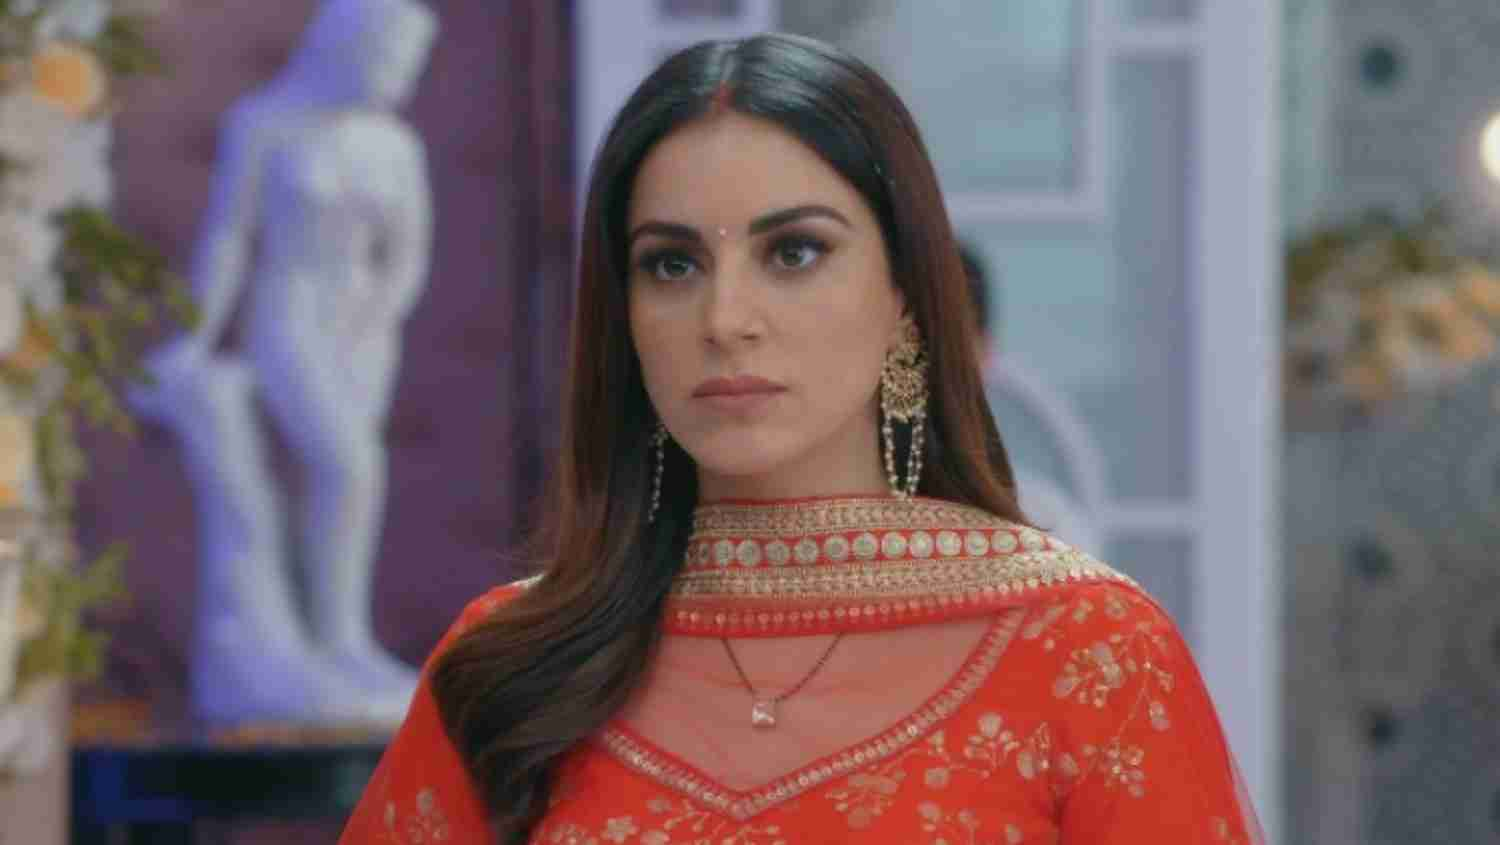 Kundali‌ ‌Bhagya‌ ‌4 February ‌2021 ‌Written‌ ‌Update,‌ ‌ Kundali‌ ‌Bhagya‌ ‌4 February ‌2021,‌ ‌ Kundali‌ ‌Bhagya‌ ‌4 February ‌Spoiler‌ ‌Alert,‌ ‌ Kundali‌ ‌Bhagya‌ ‌4 February ‌full‌ ‌episode‌, zee anmol kundali bhagya natak, Zee5,‌ ‌ Zee‌ ‌TV,‌ ‌ कुंडली भाग्य आज का नाटक, कुंडली भाग्य नाटक, Kundali‌ ‌Bhagya‌, Preeta,Mahira, Sharlin, Karan